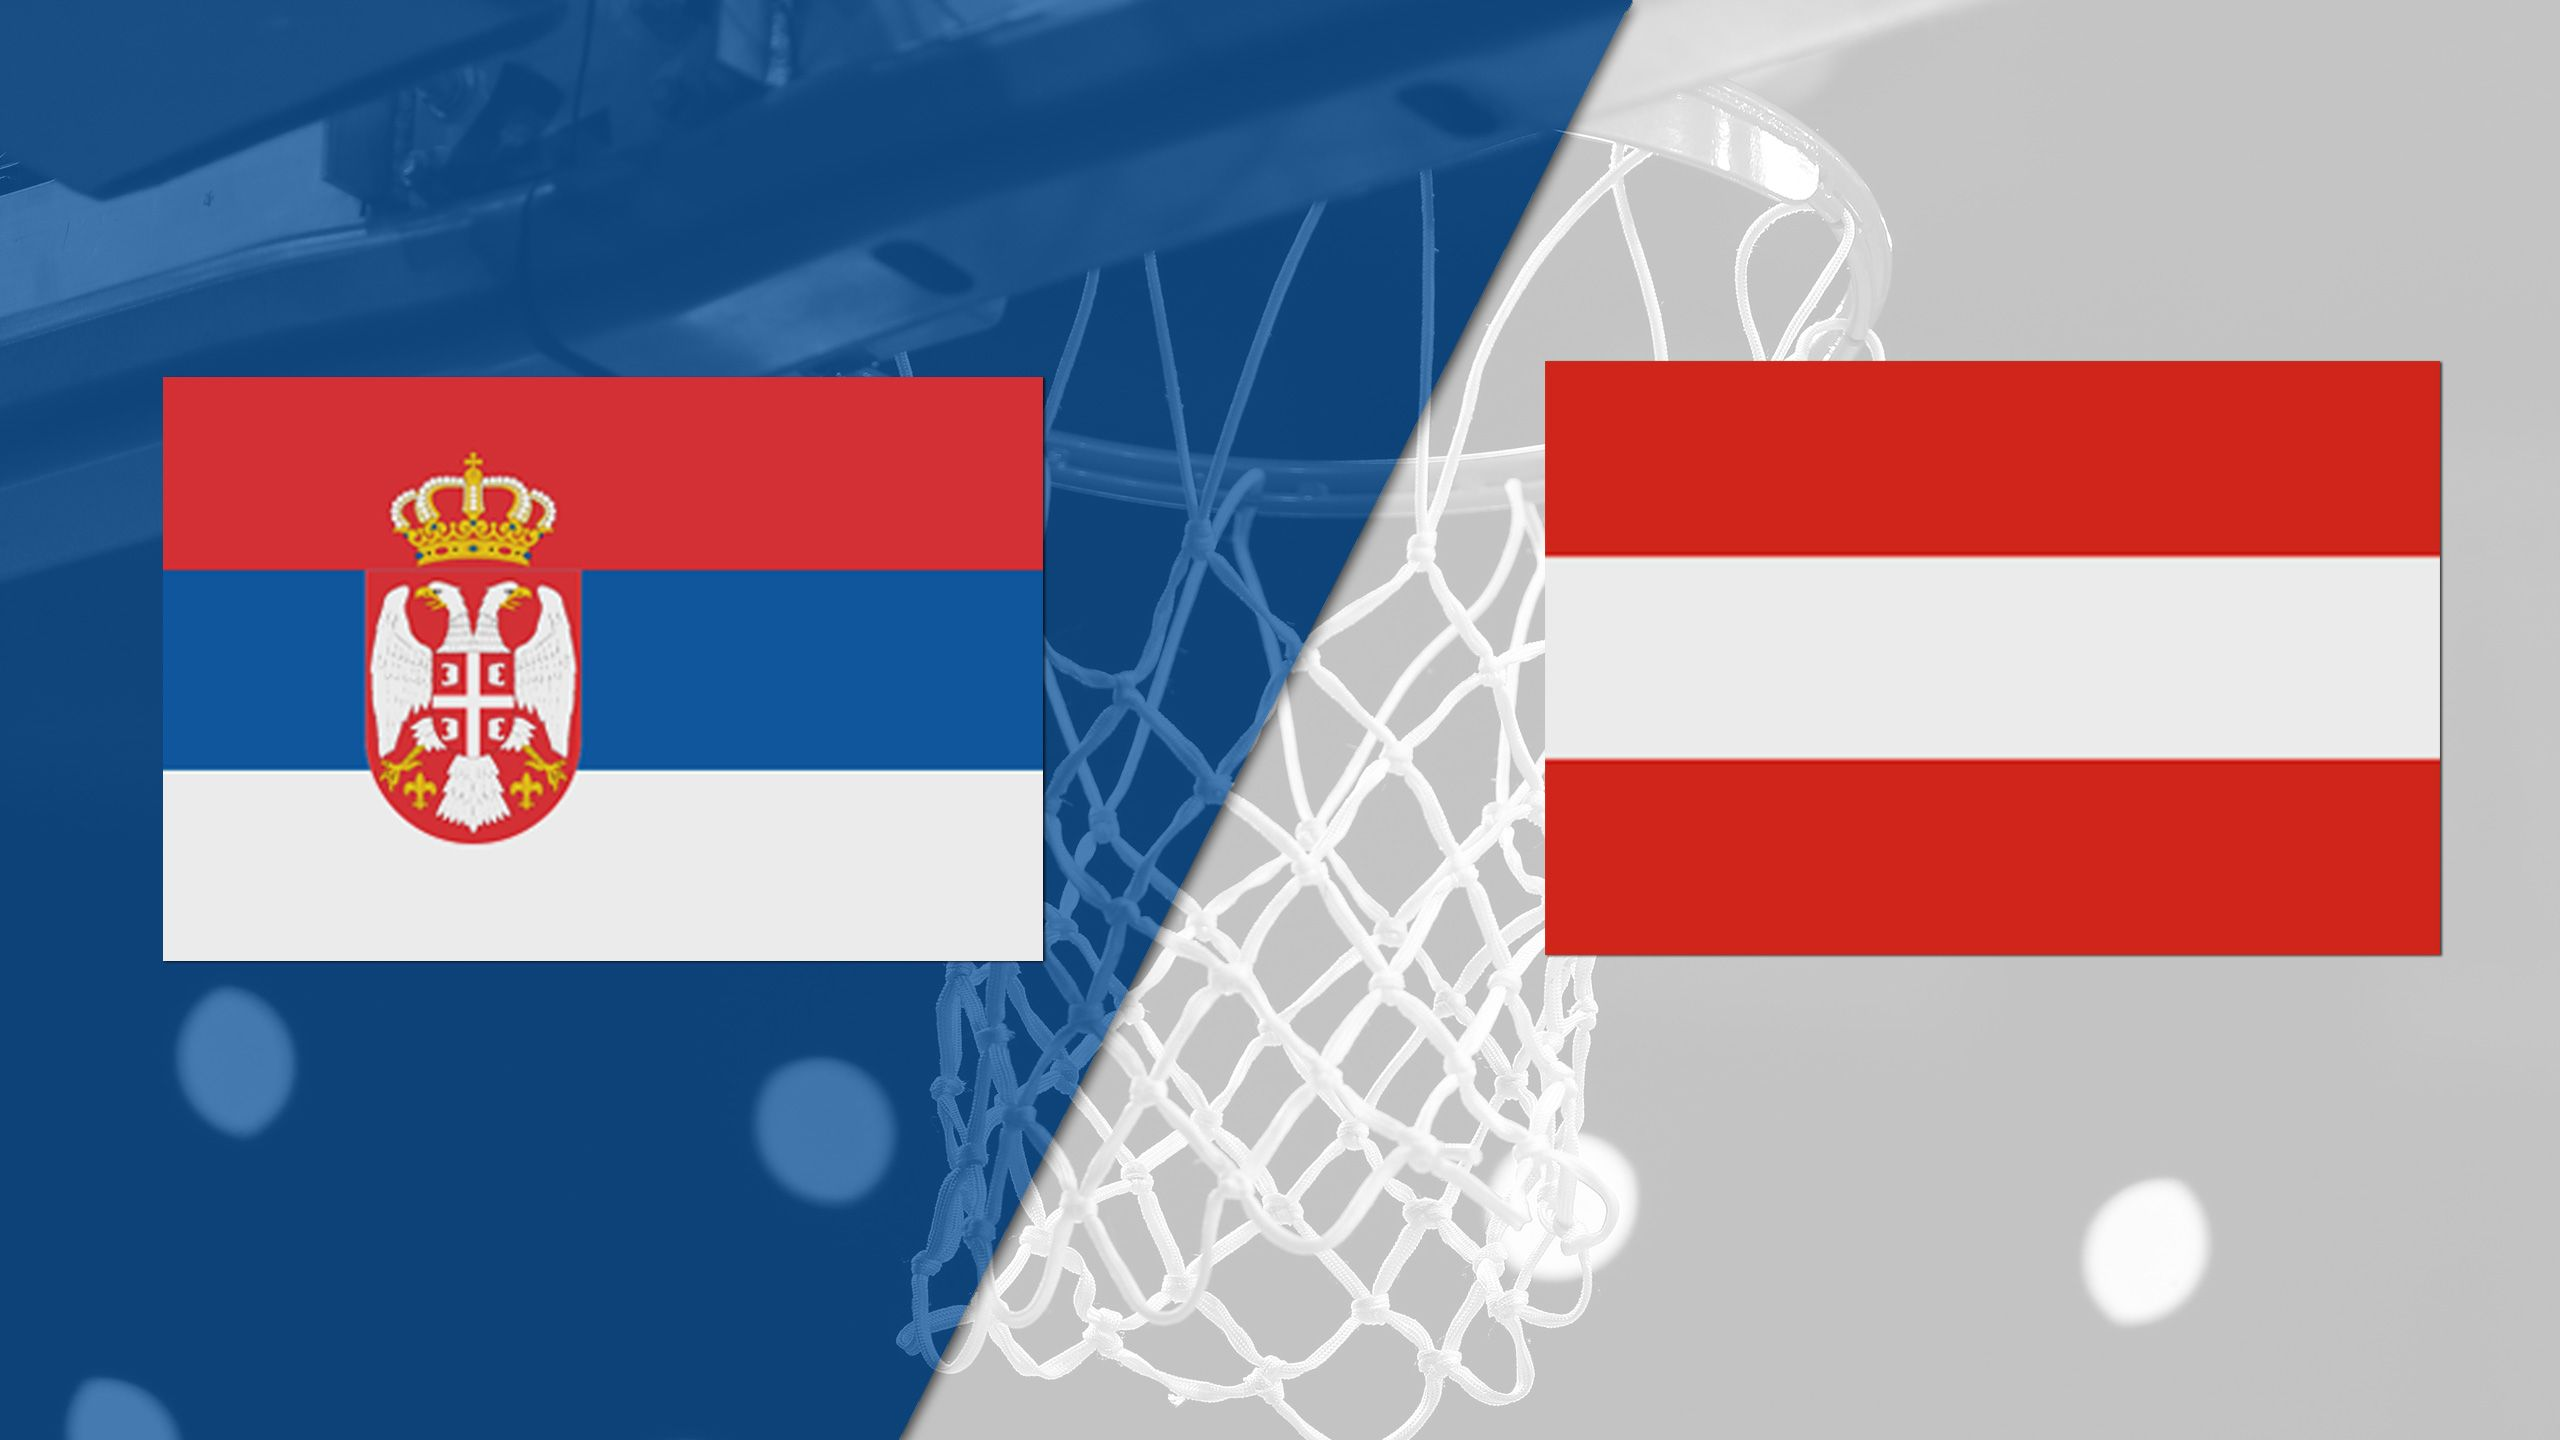 Serbia vs. Austria (FIBA World Cup 2019 Qualifier)